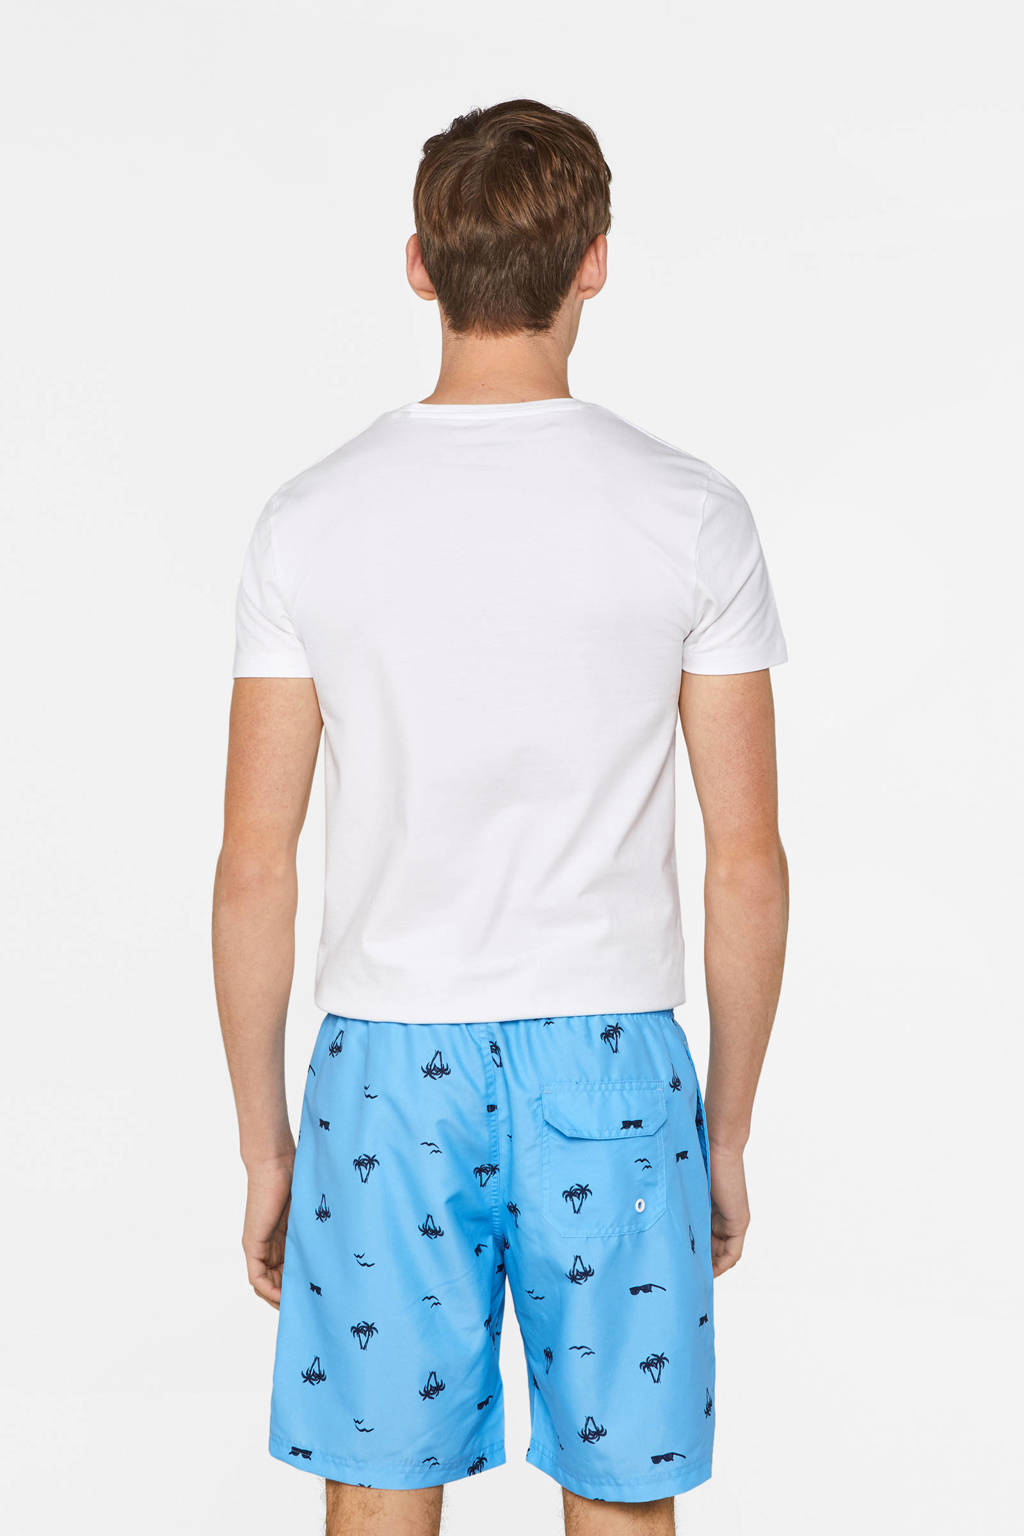 WE Fashion zwemshort met all over print blauw, Blauw